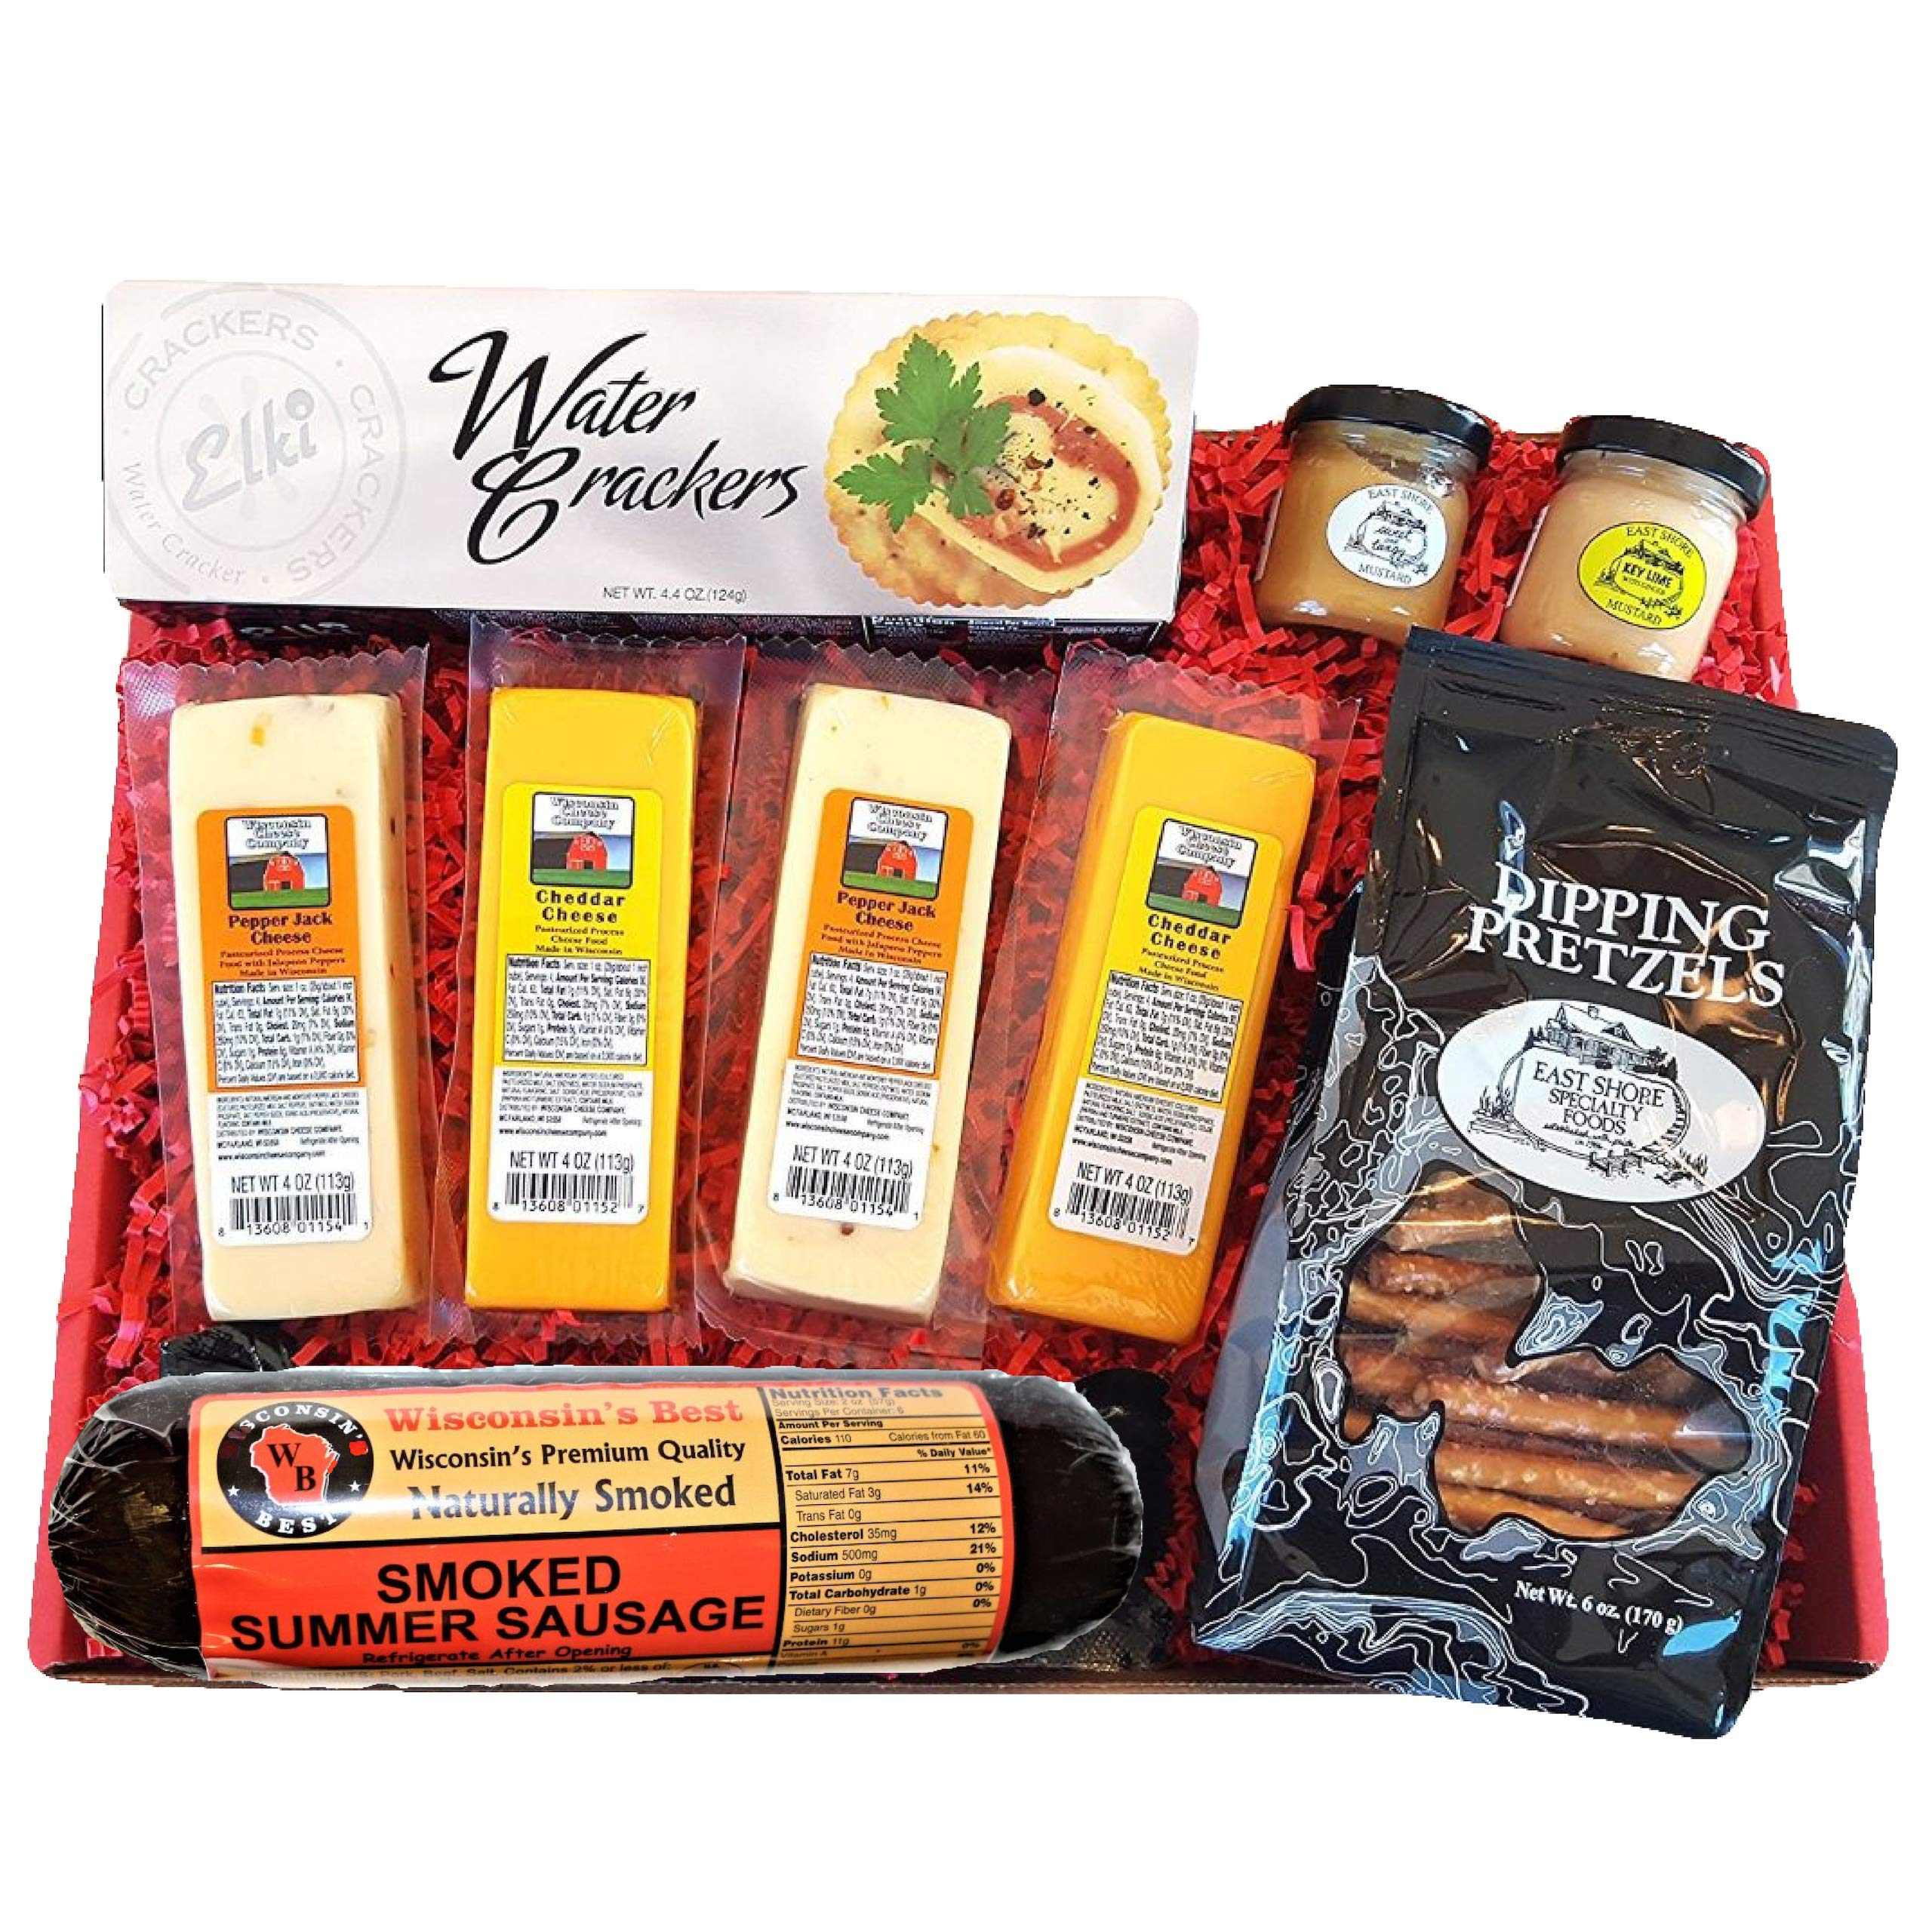 Holiday Specialty Gift Basket - features Smoked Summer Sausages, 100% Wisconsin Cheeses, Crackers, Pretzels & Mustard | A Great Snack or Gift Basket for Family & Friends.